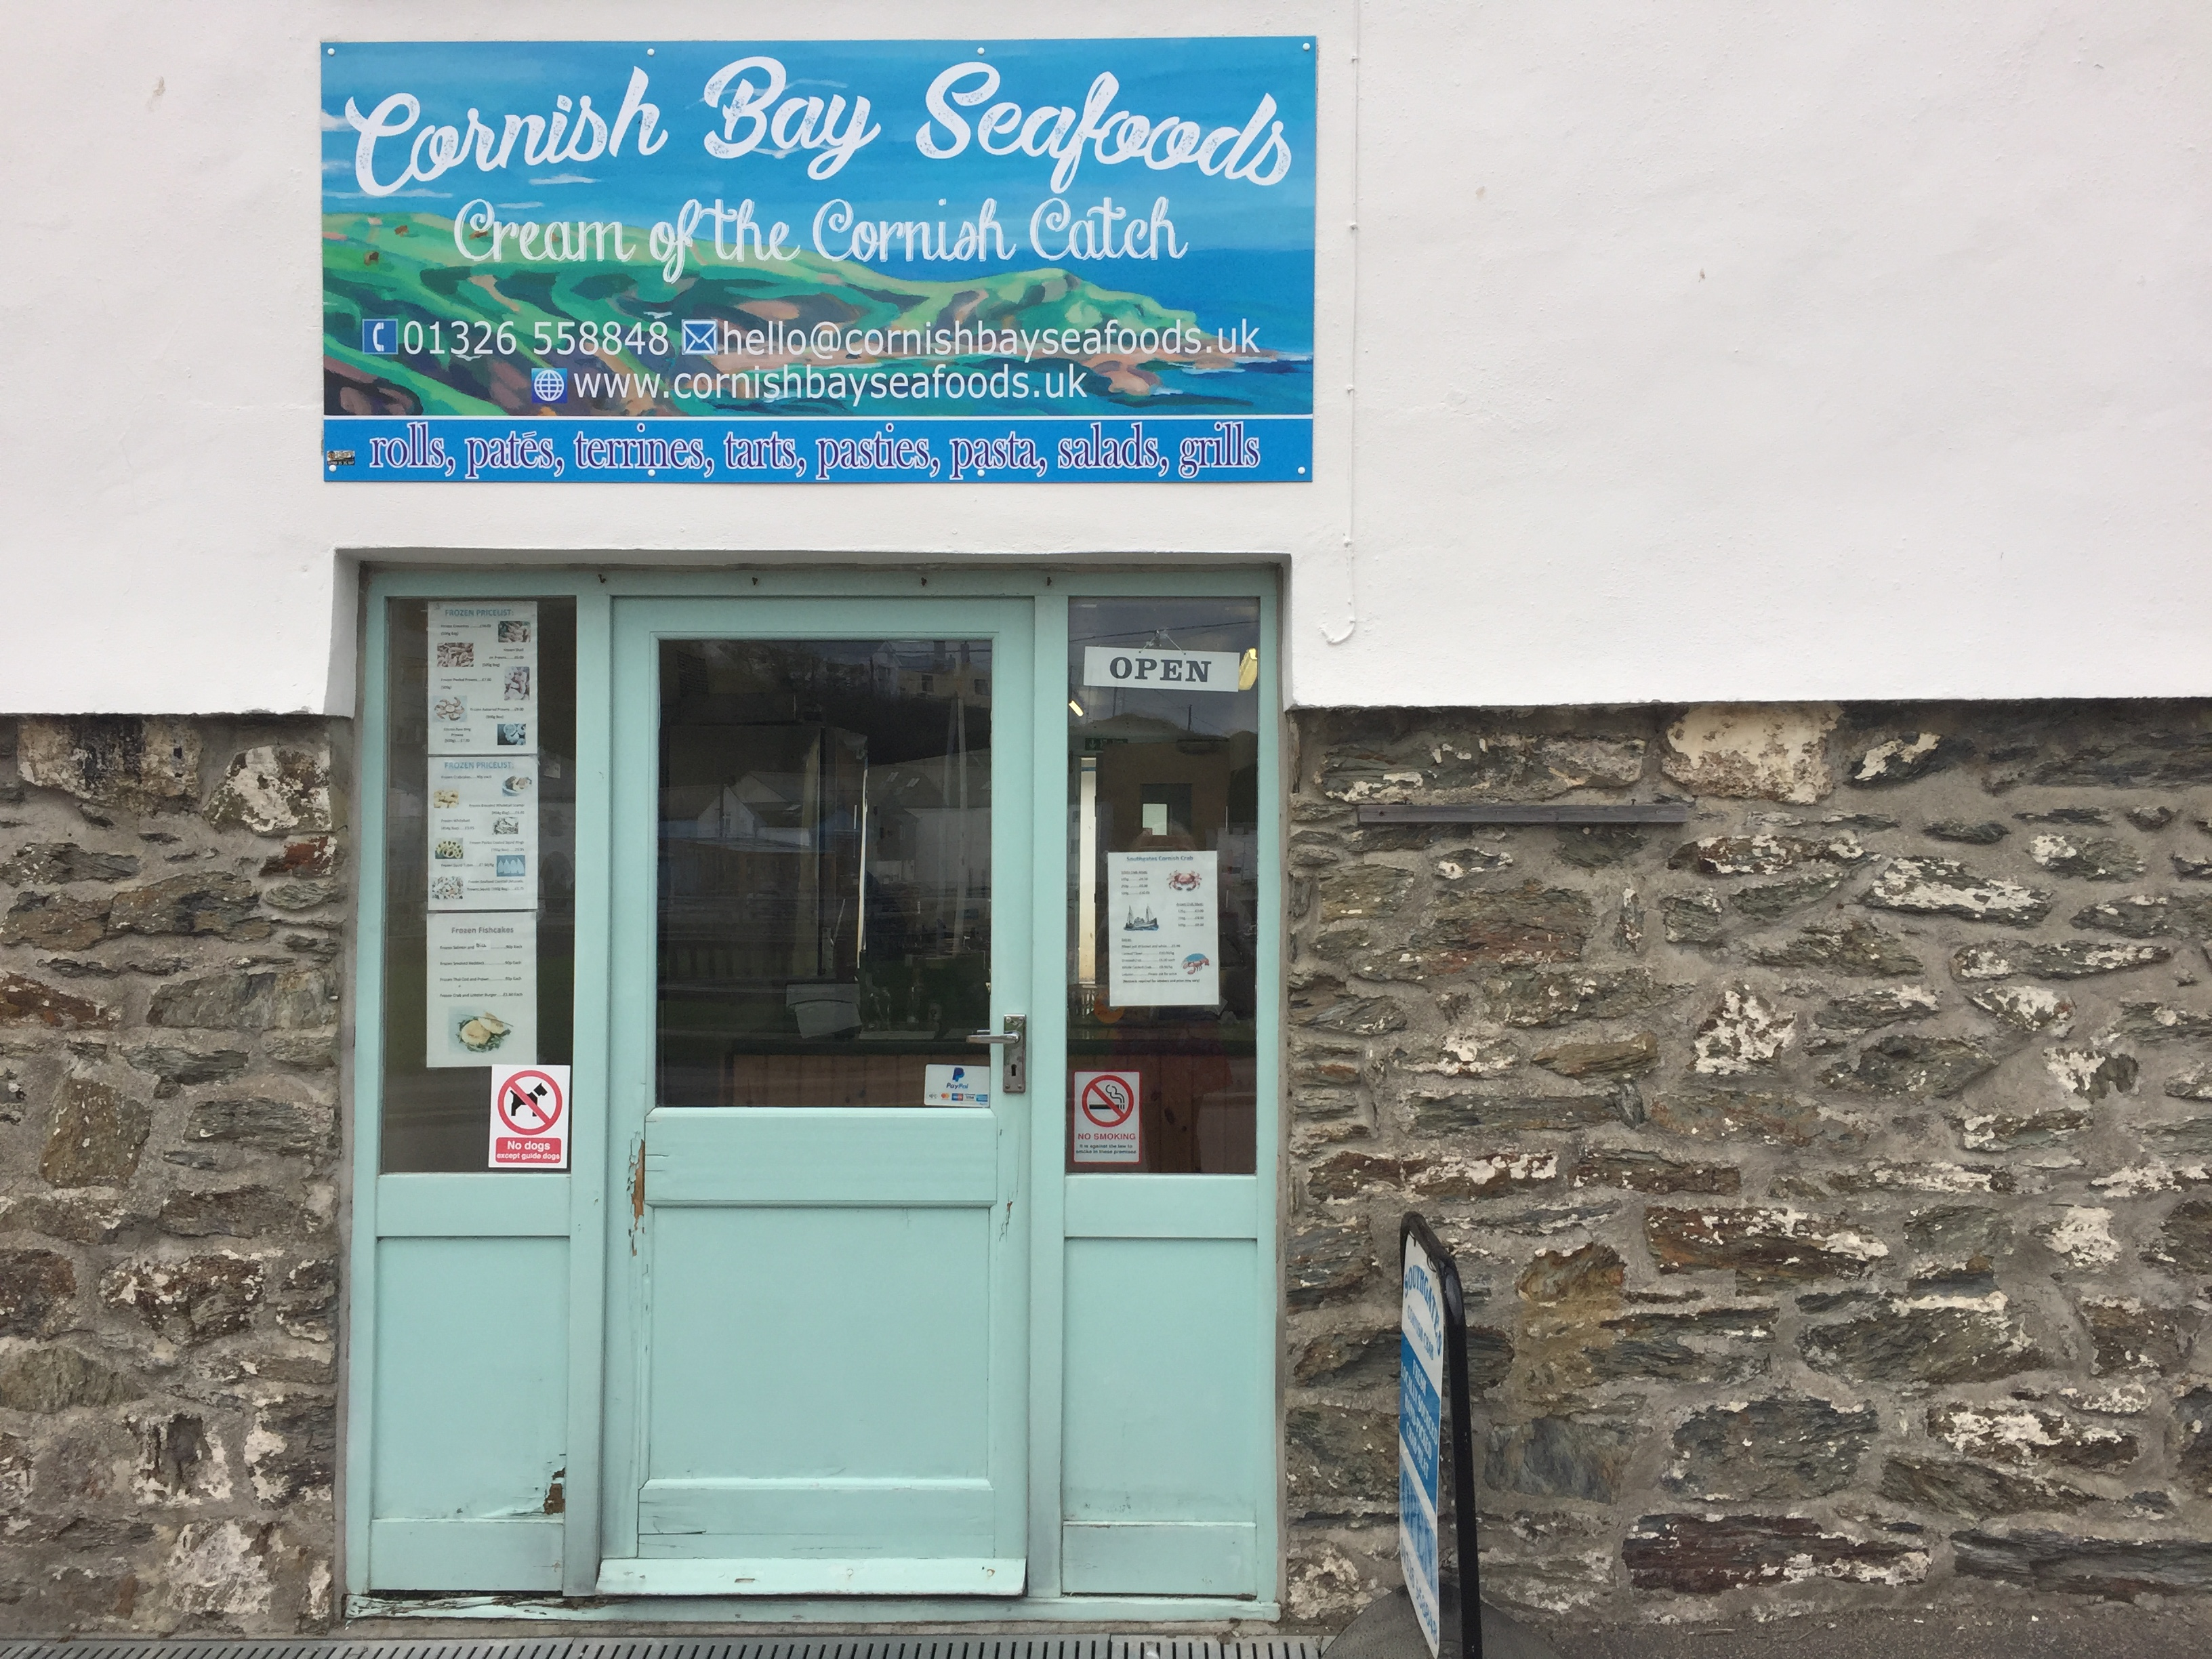 Cornish Bay Seafoods